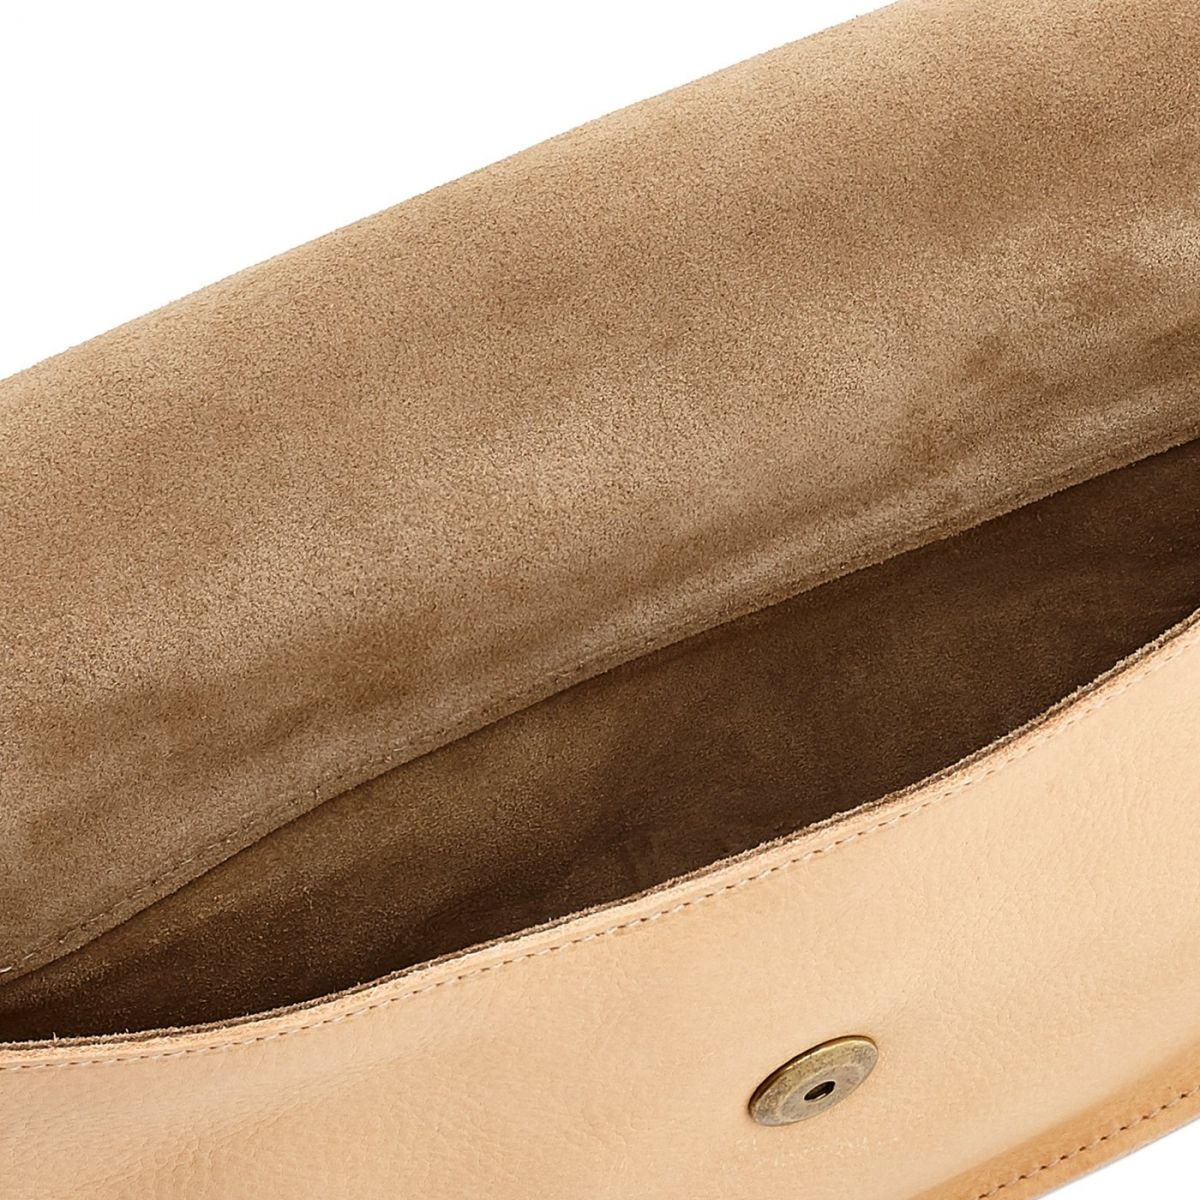 Women's Crossbody Bag Salina in Cowhide Leather BCR173 color Natural | Details